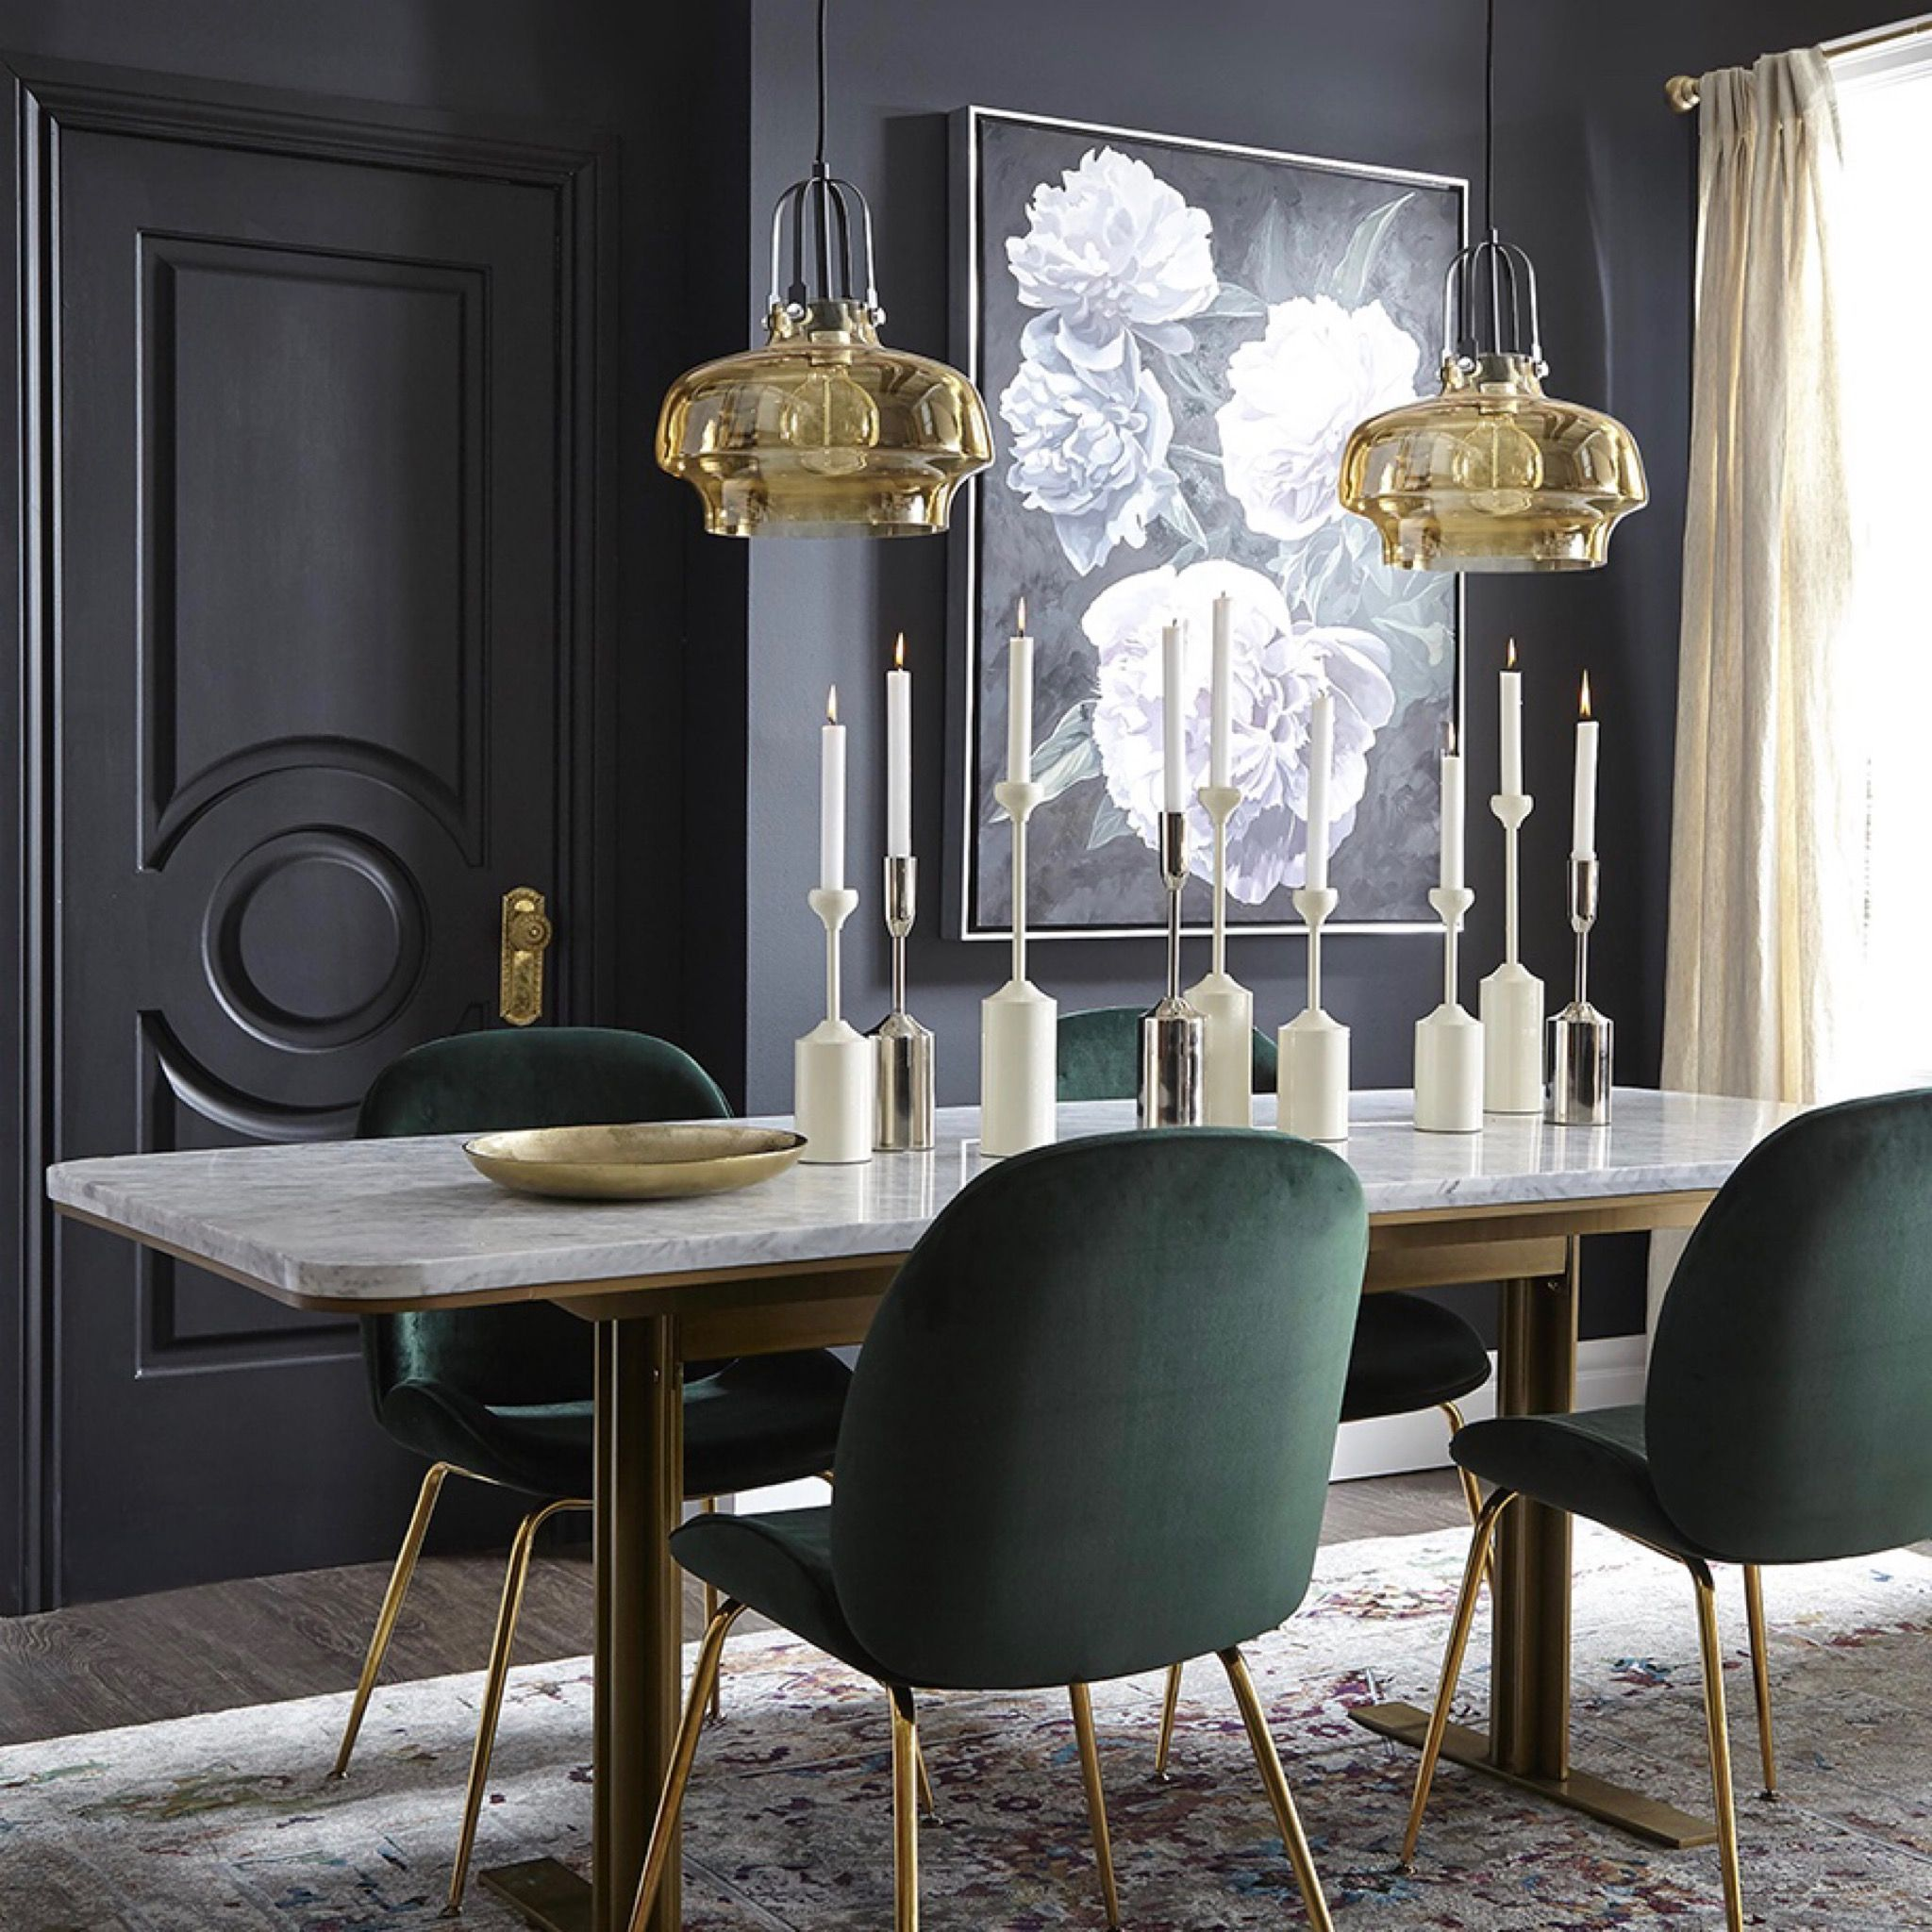 Mid Century Modern With An Art Deco Flair In 2020 Velvet Dining Room Chairs Dark Dining Room Velvet Dining Chairs